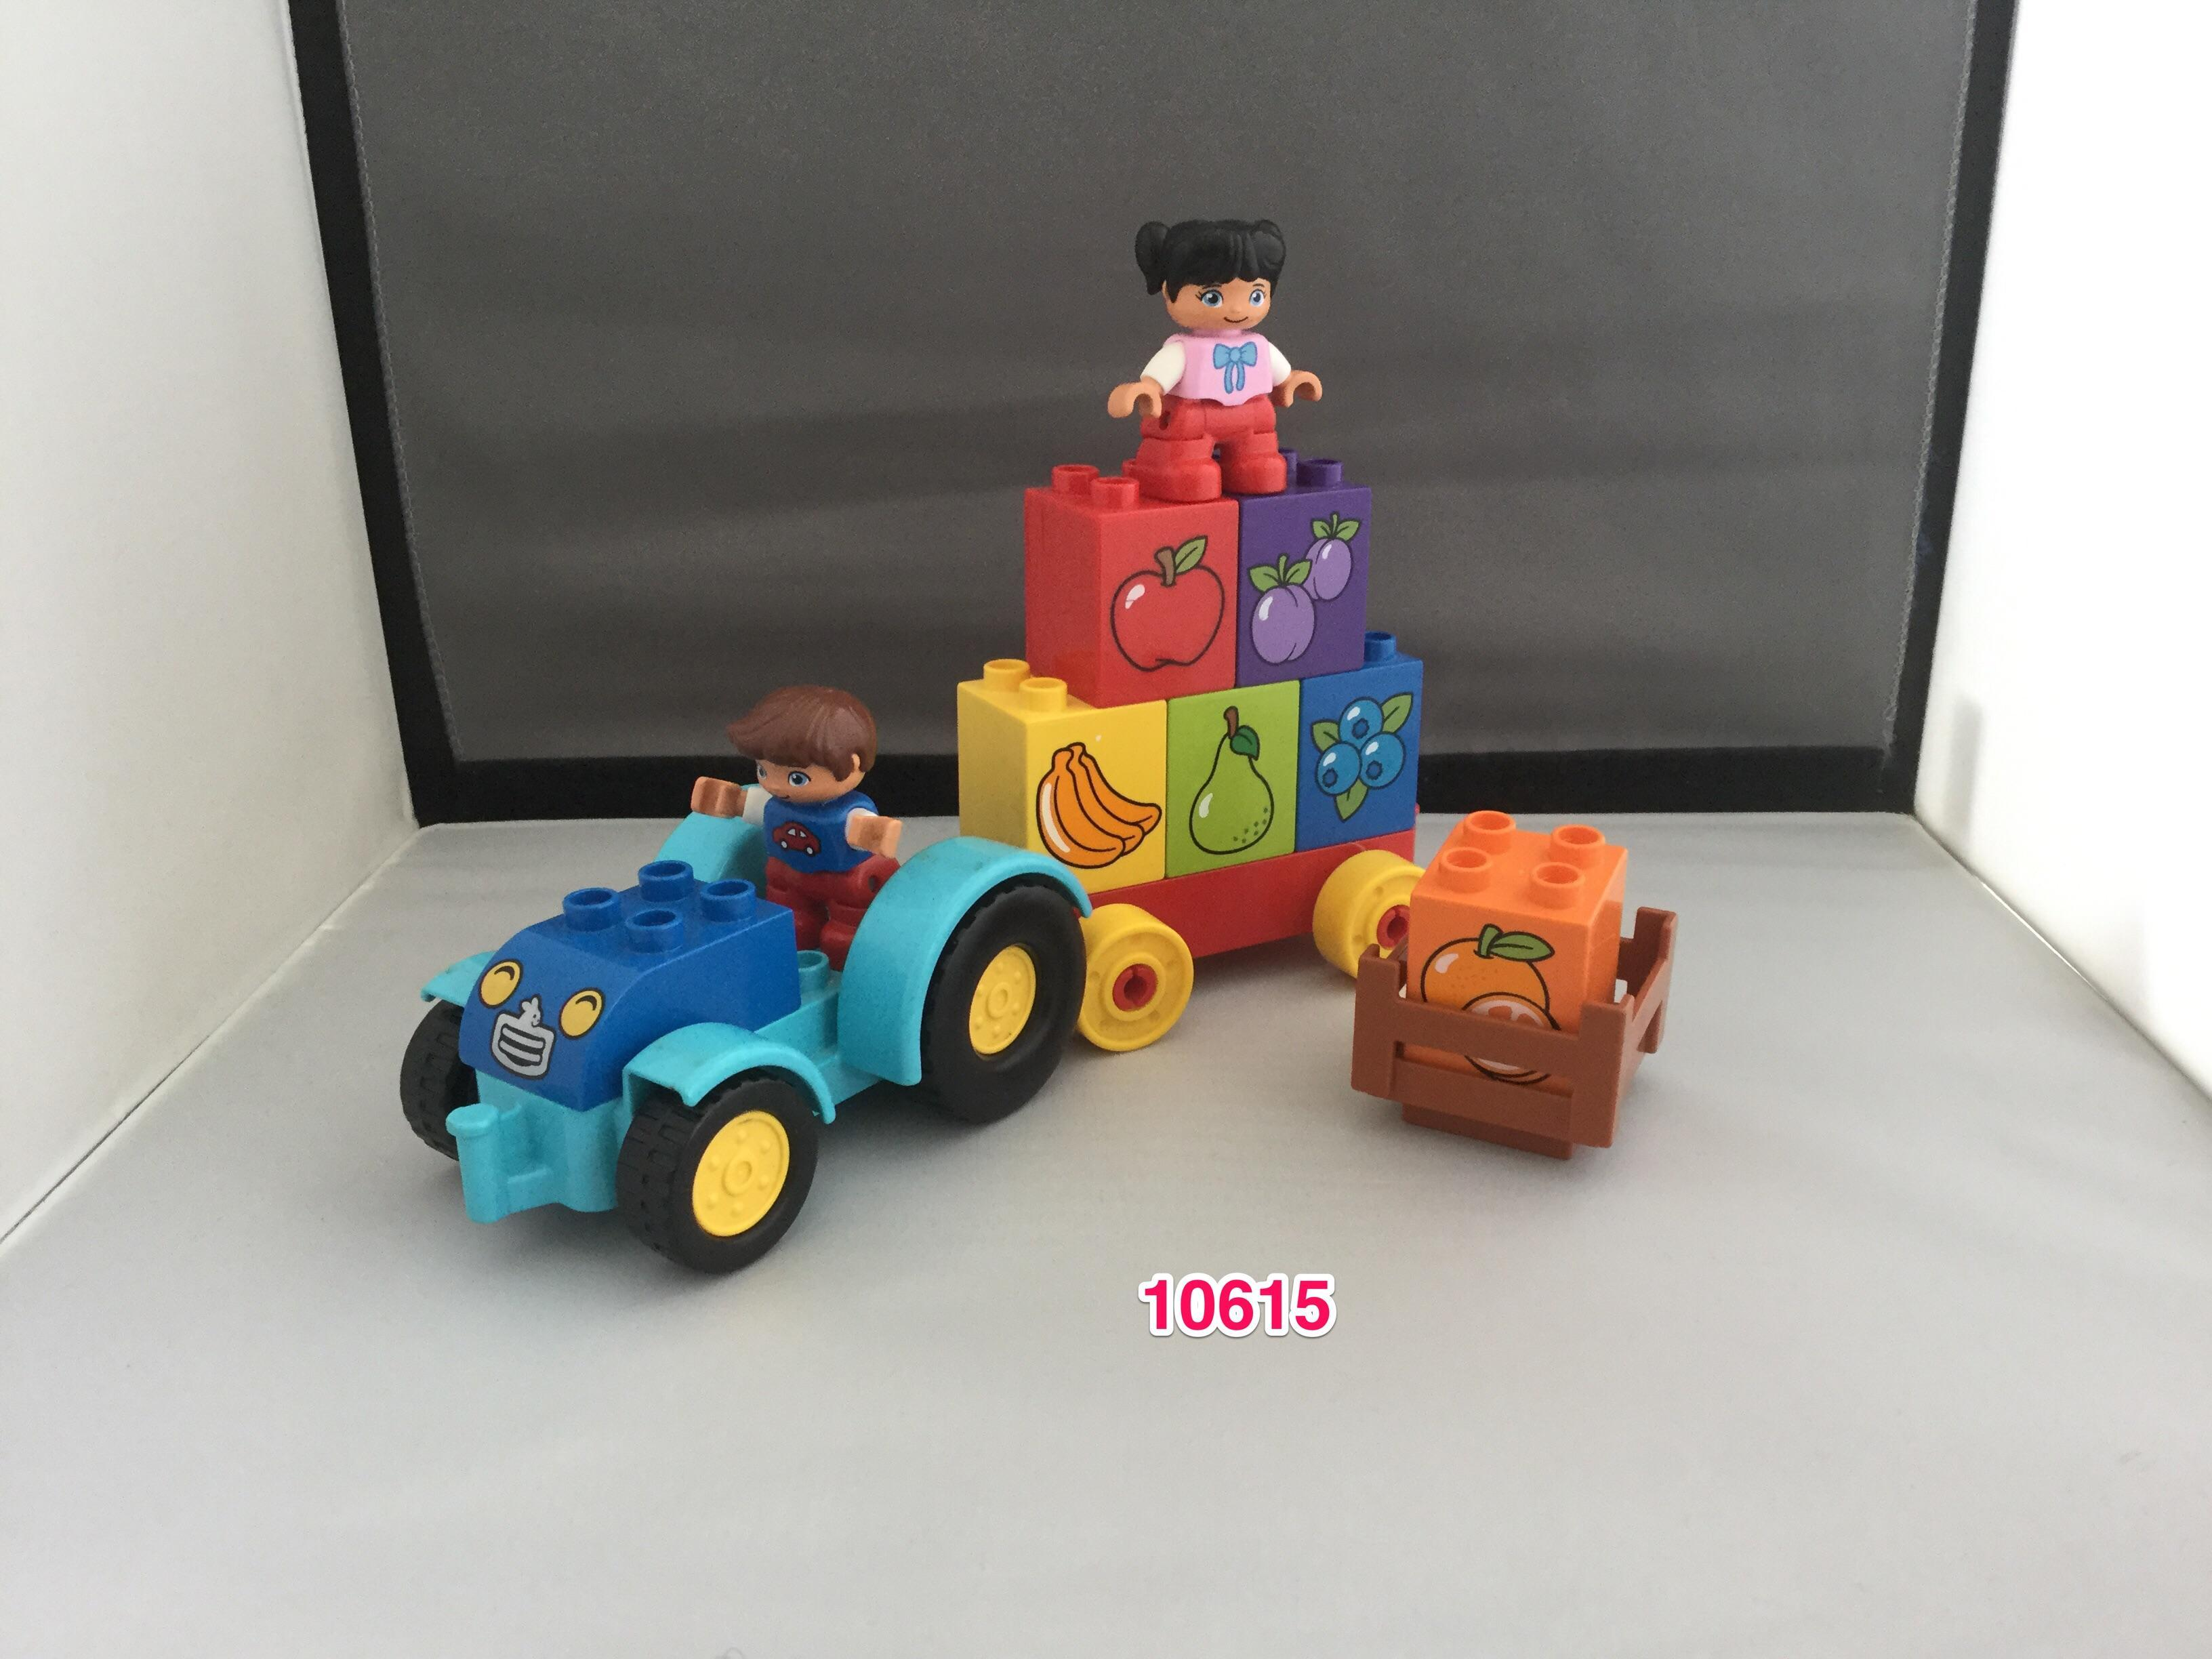 Lego Duplo - not £10 open to offers